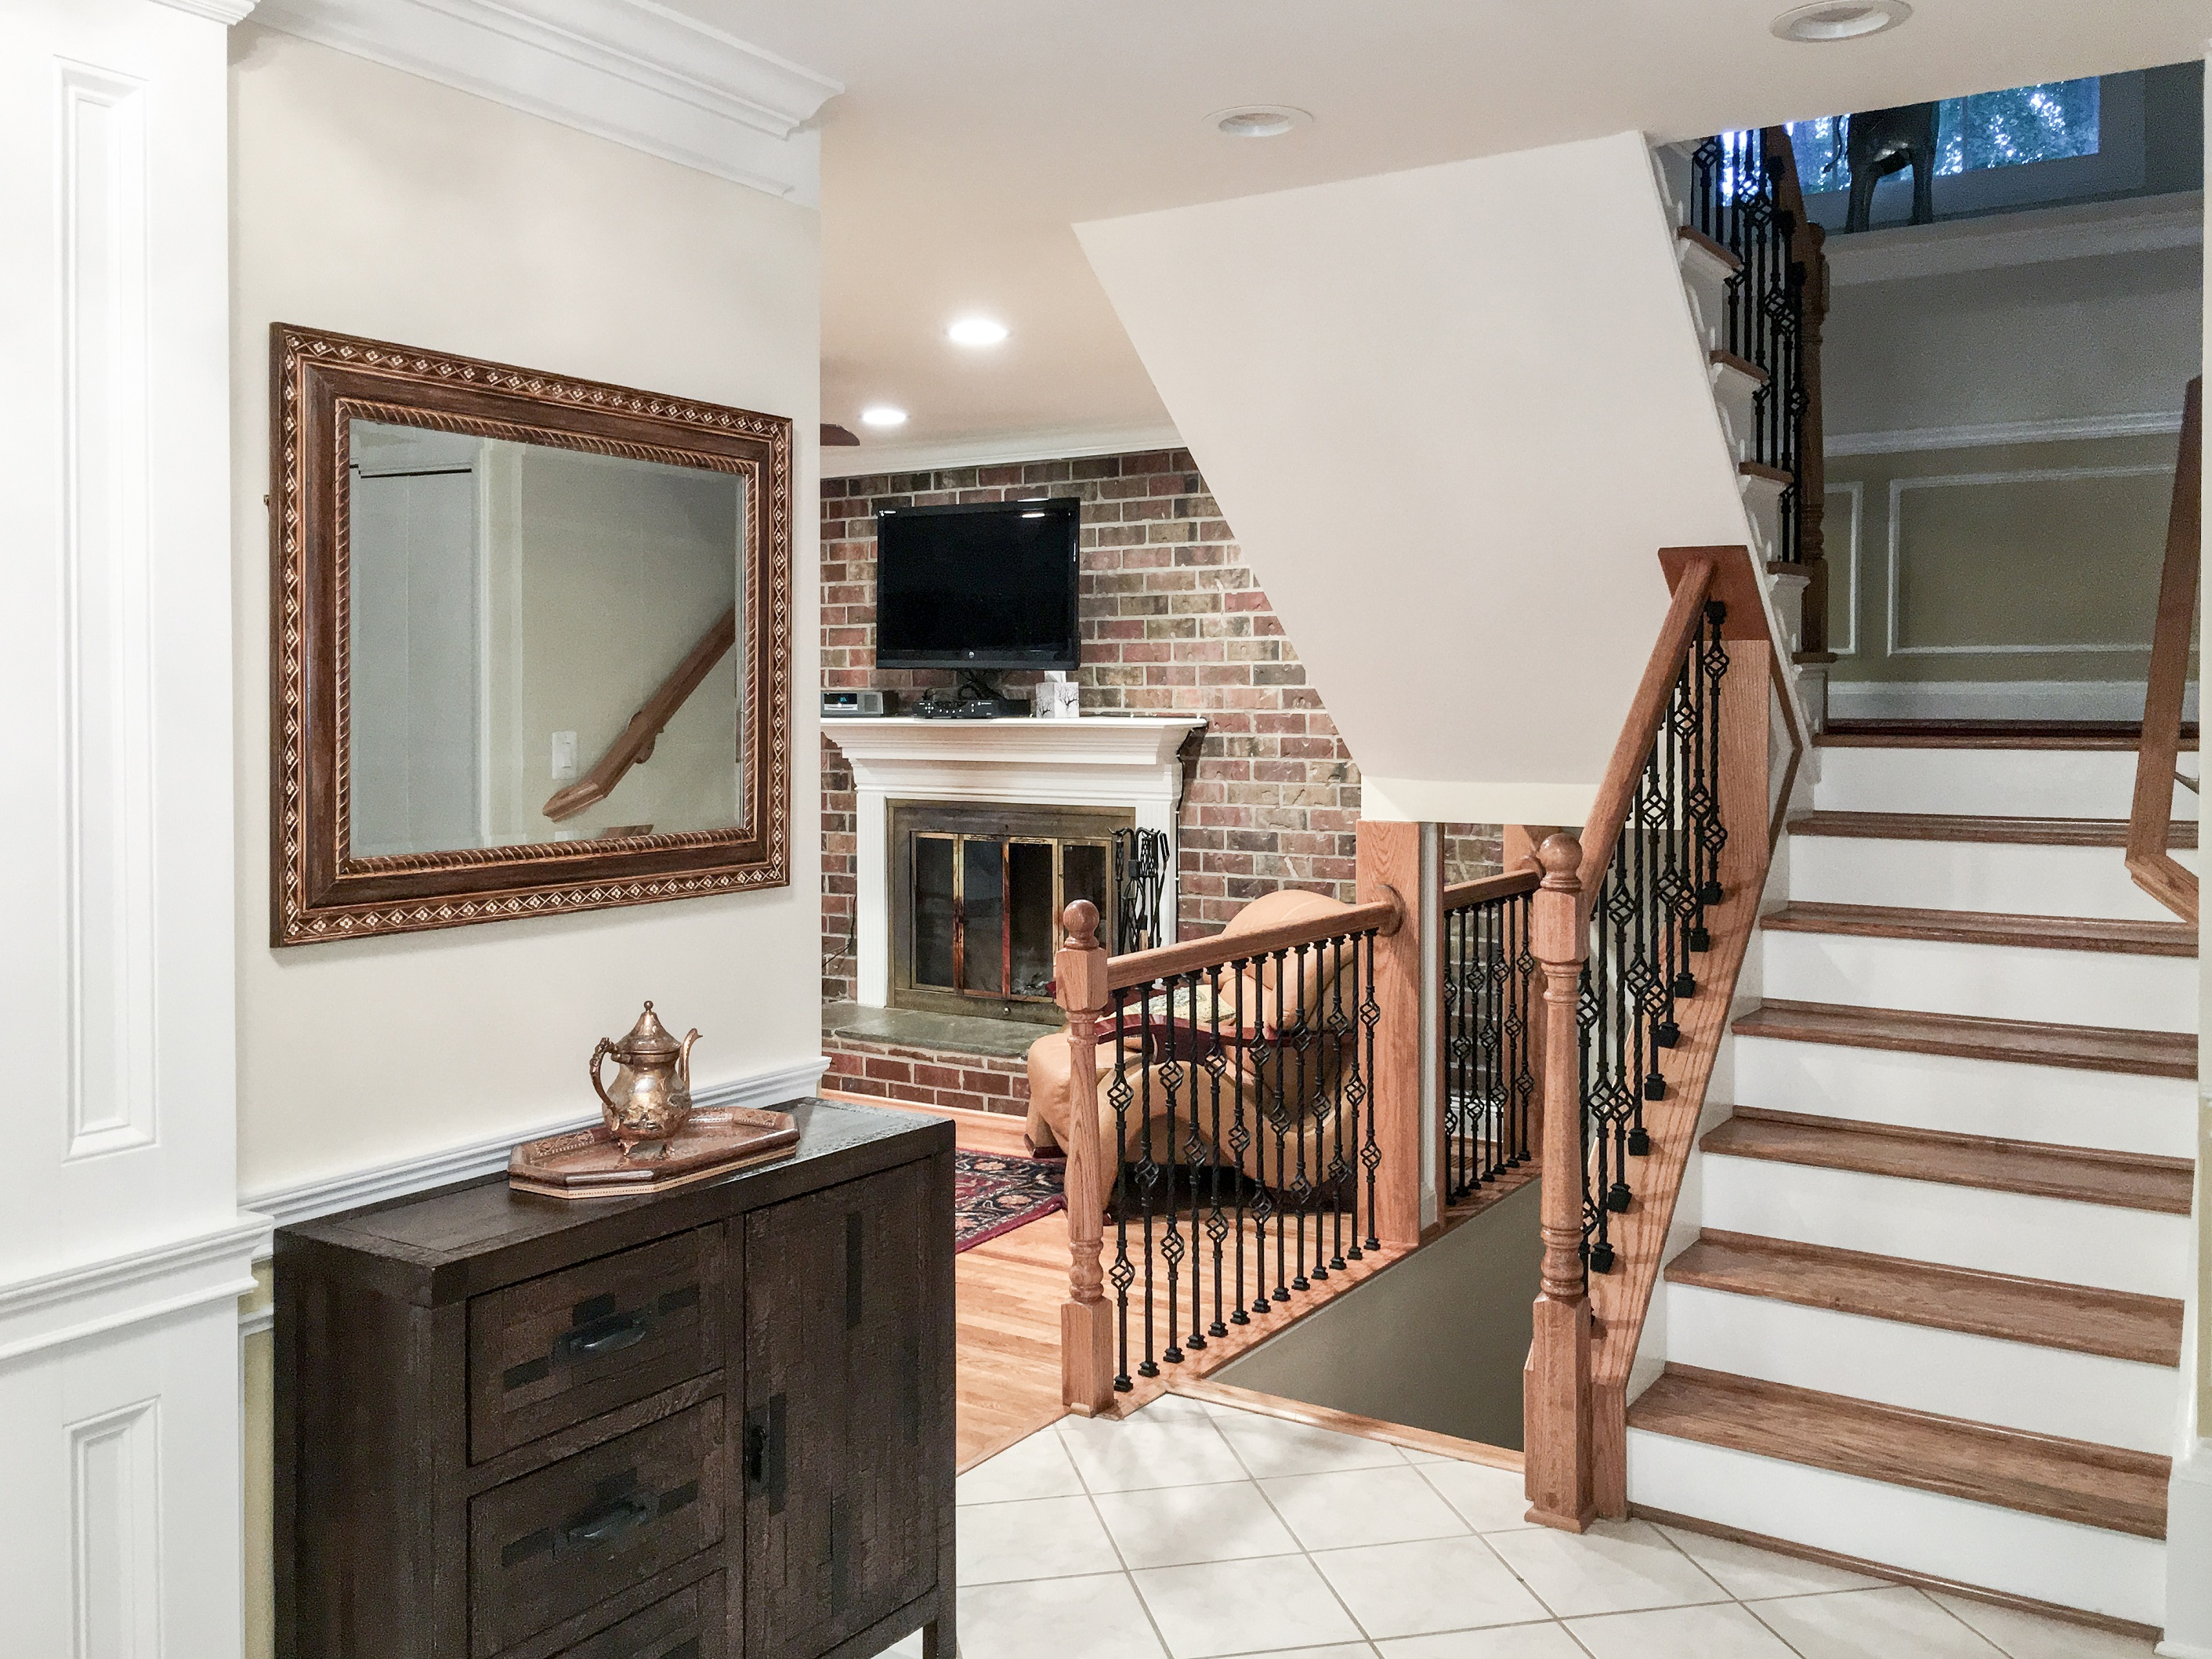 Basement Remodel in Fairfax, Virginia